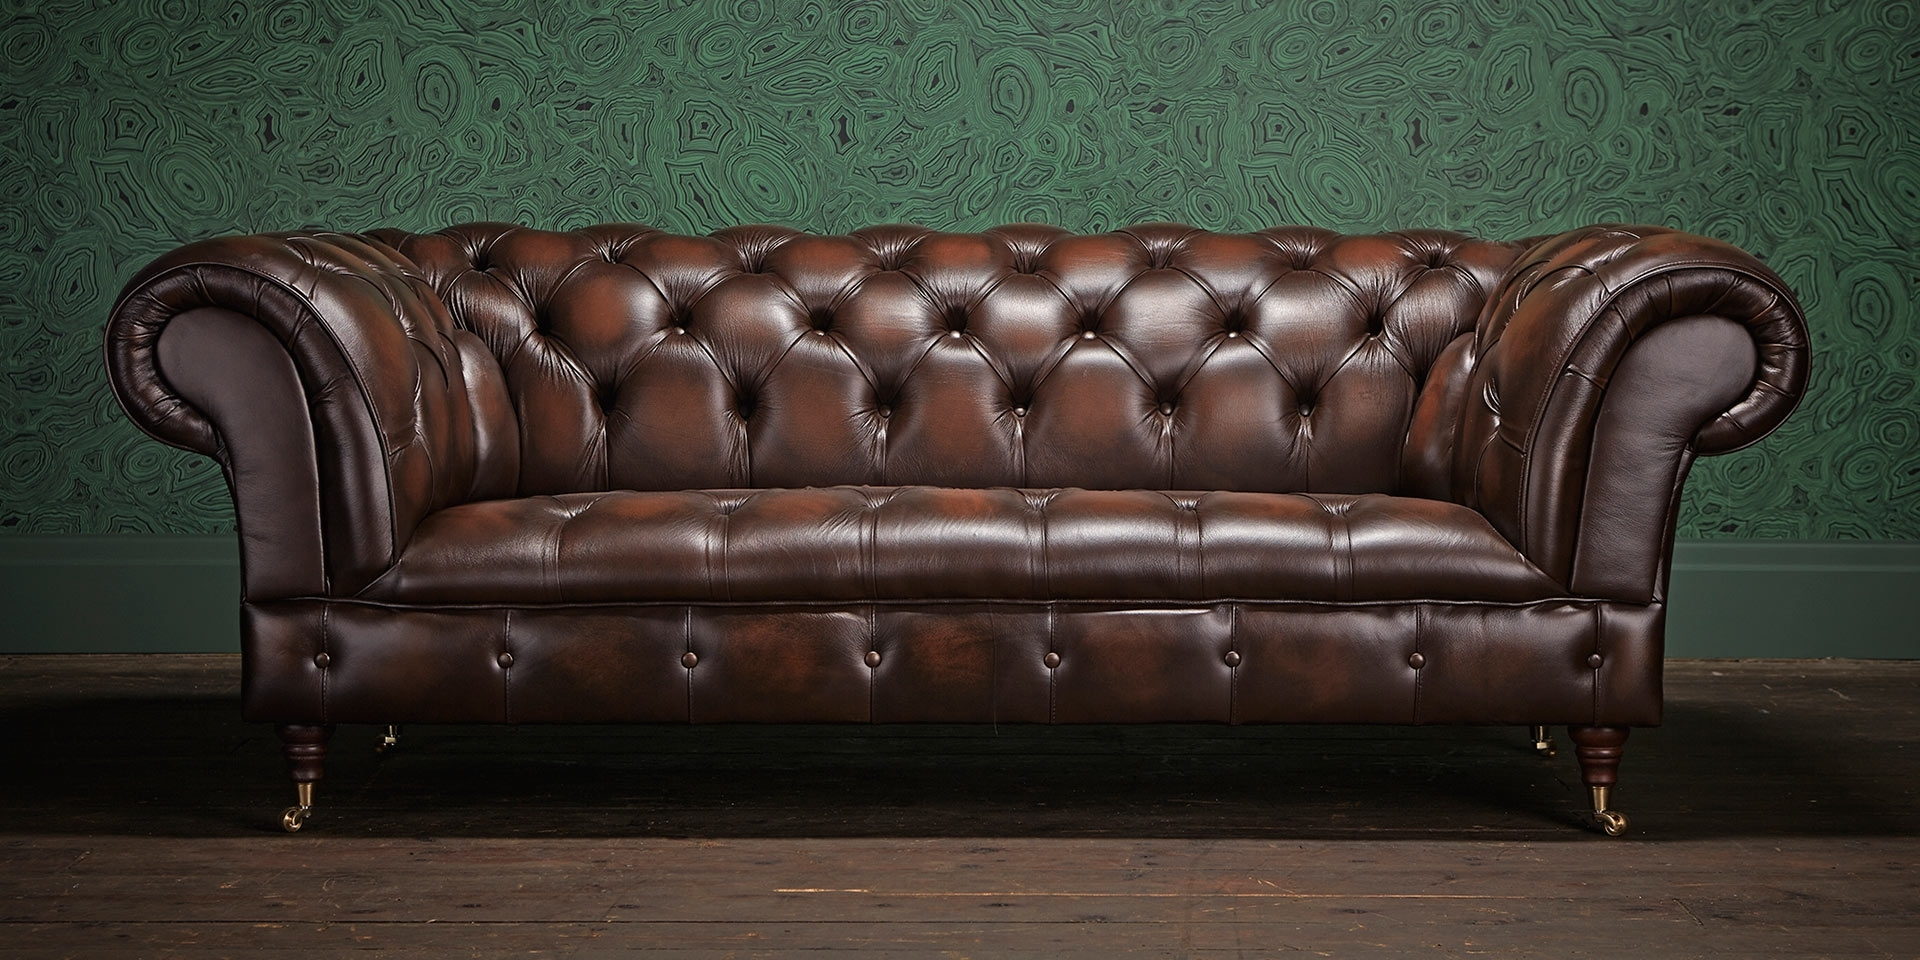 Chesterfield Sofa And Chair 15 Best Collection Of Chesterfield Sofas And Chairs